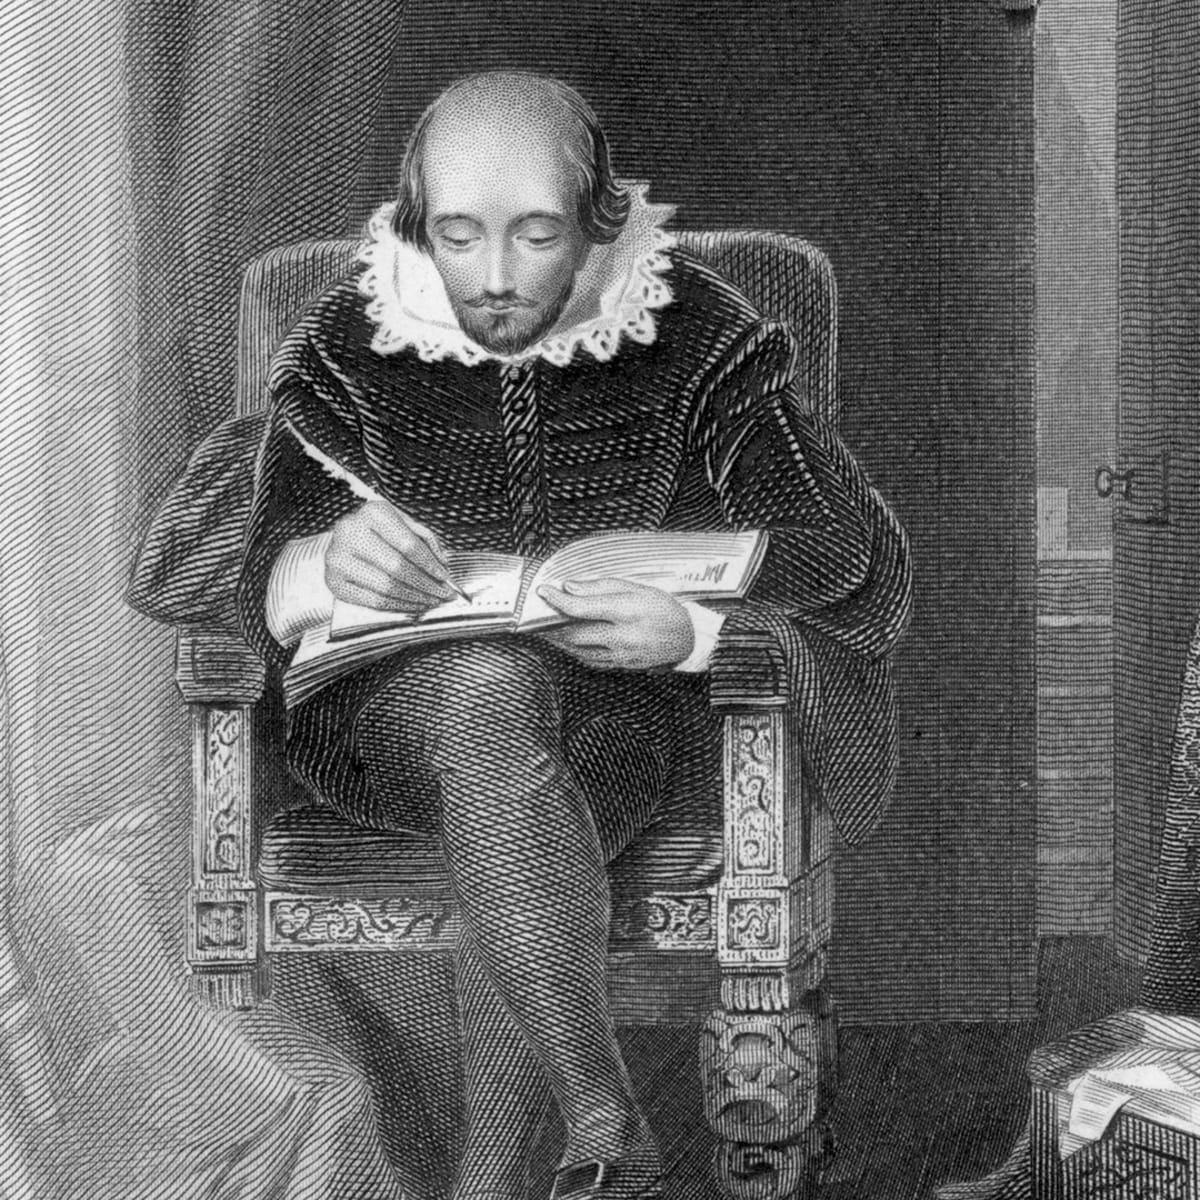 Through pestilence or pandemic, the  Bard's vision will forever endure, writes Sumit Paul